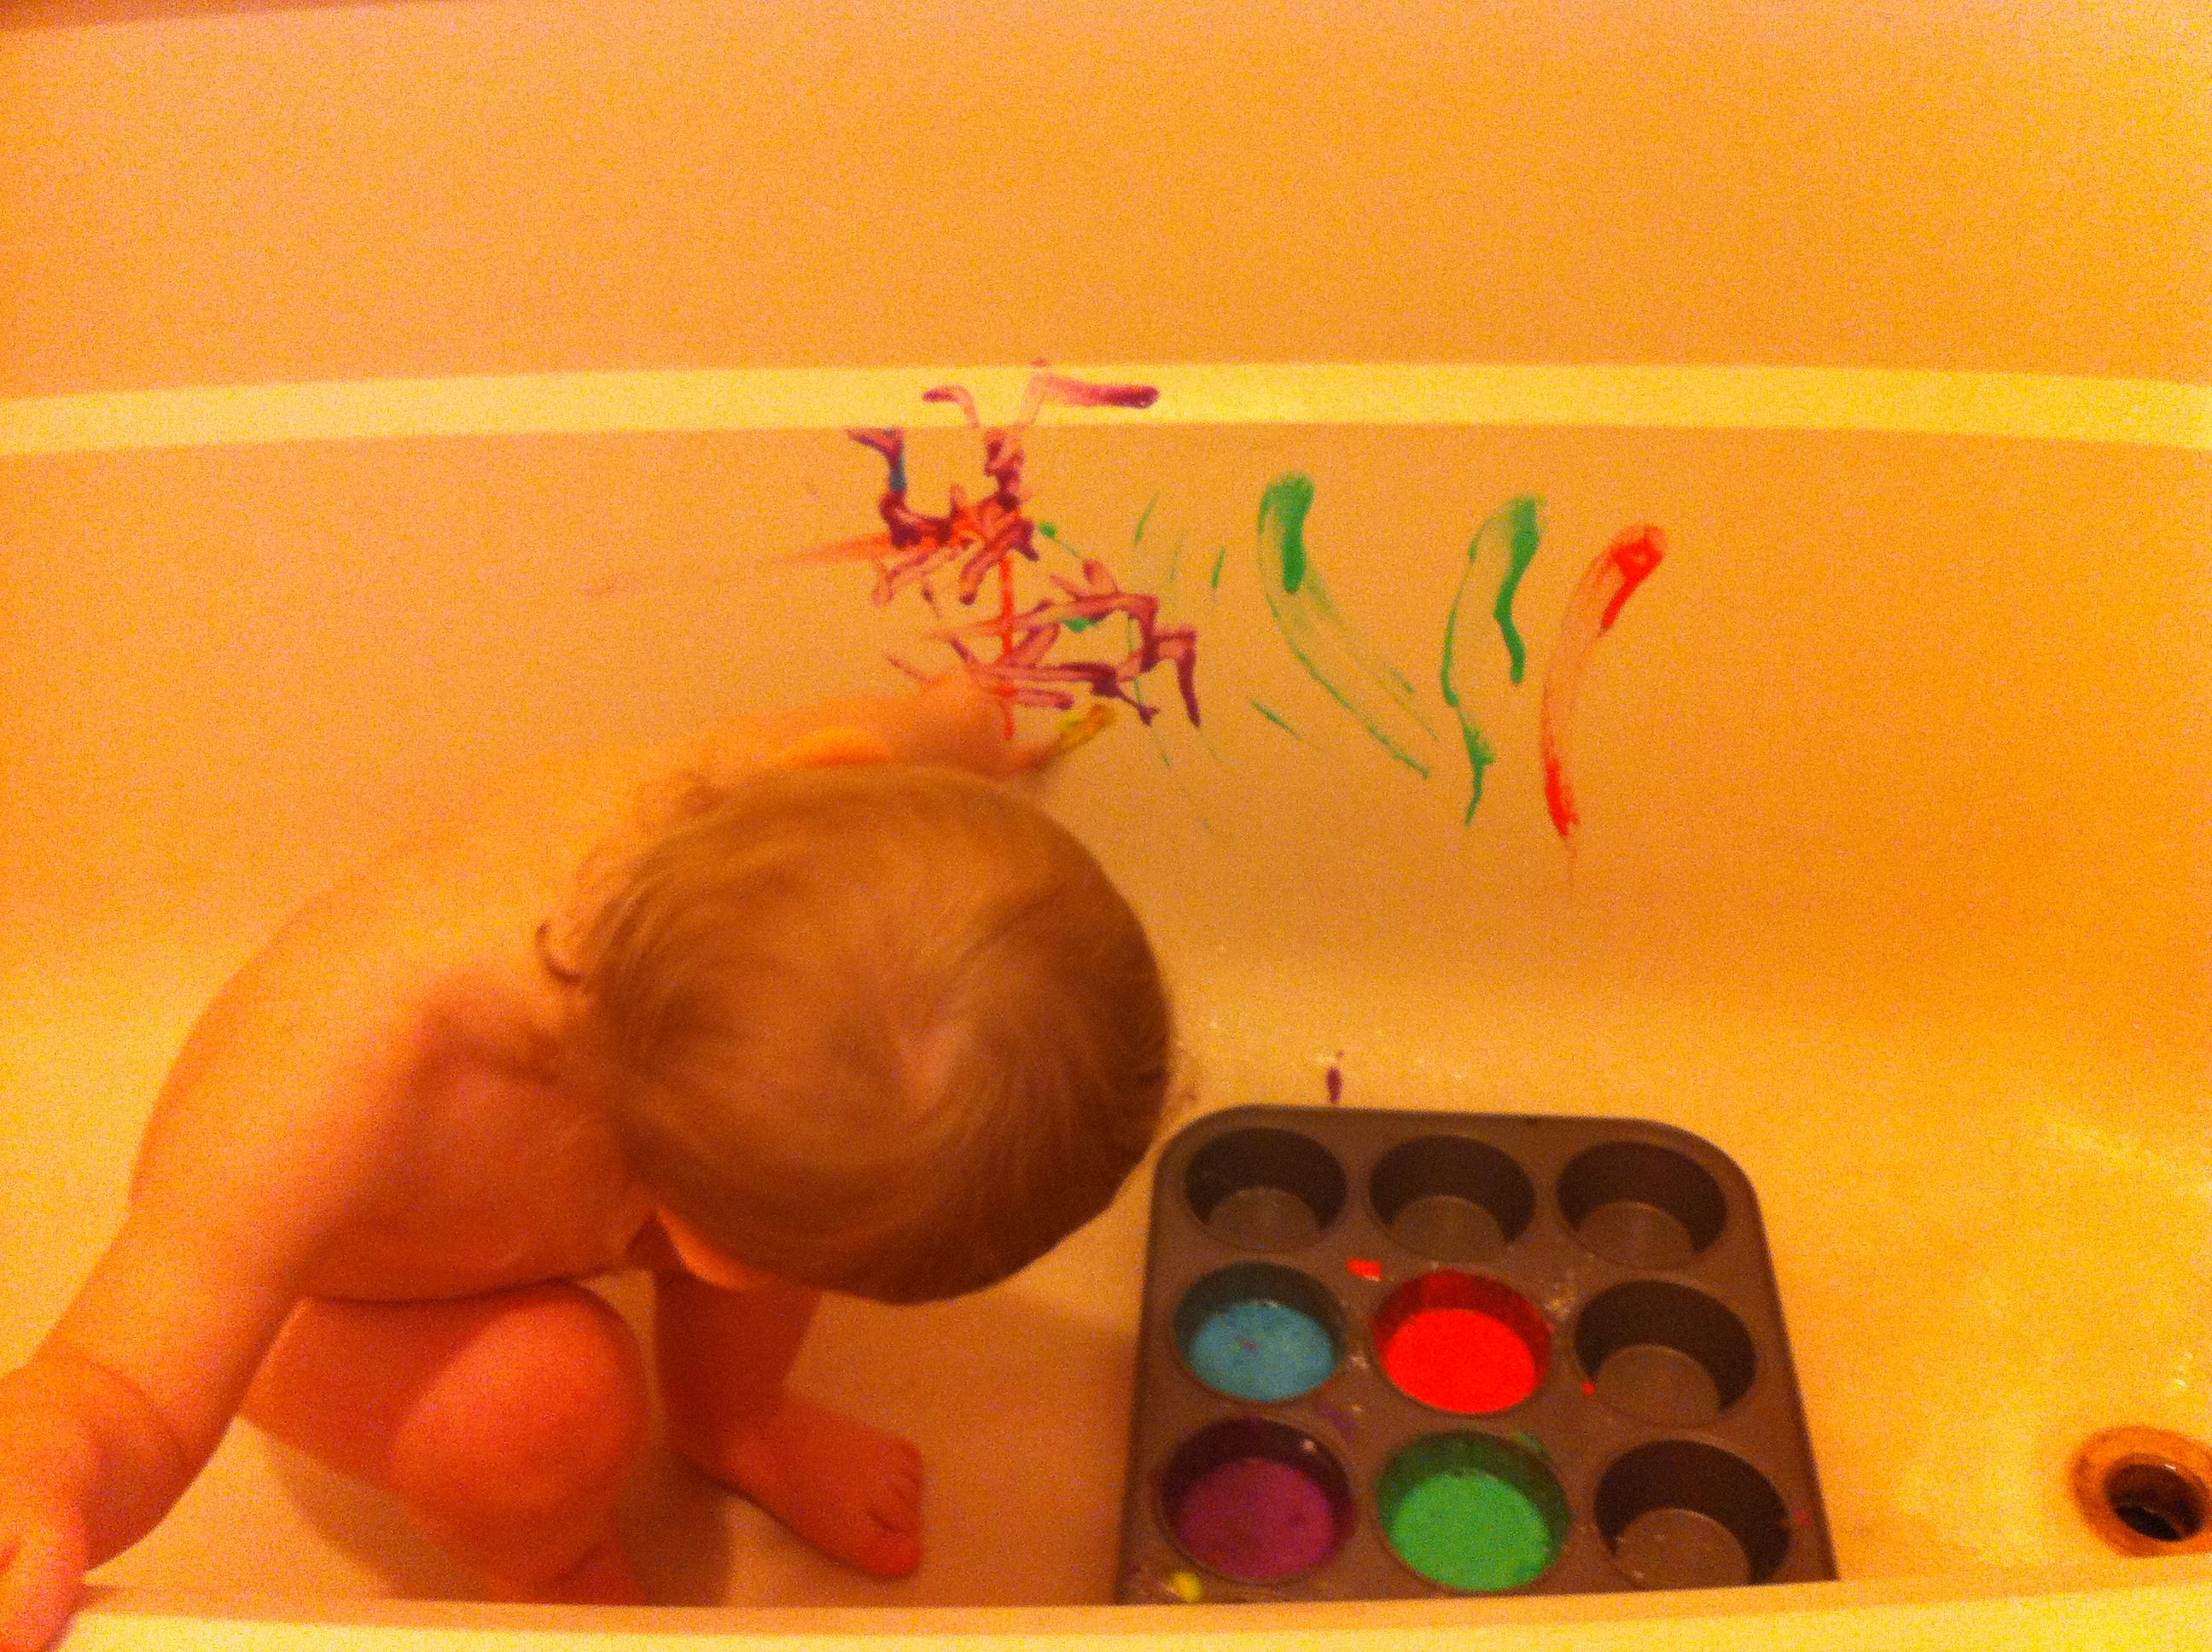 Bath paint homemade 1 TB corn starch 2-3 drops food color 2-3 TB water